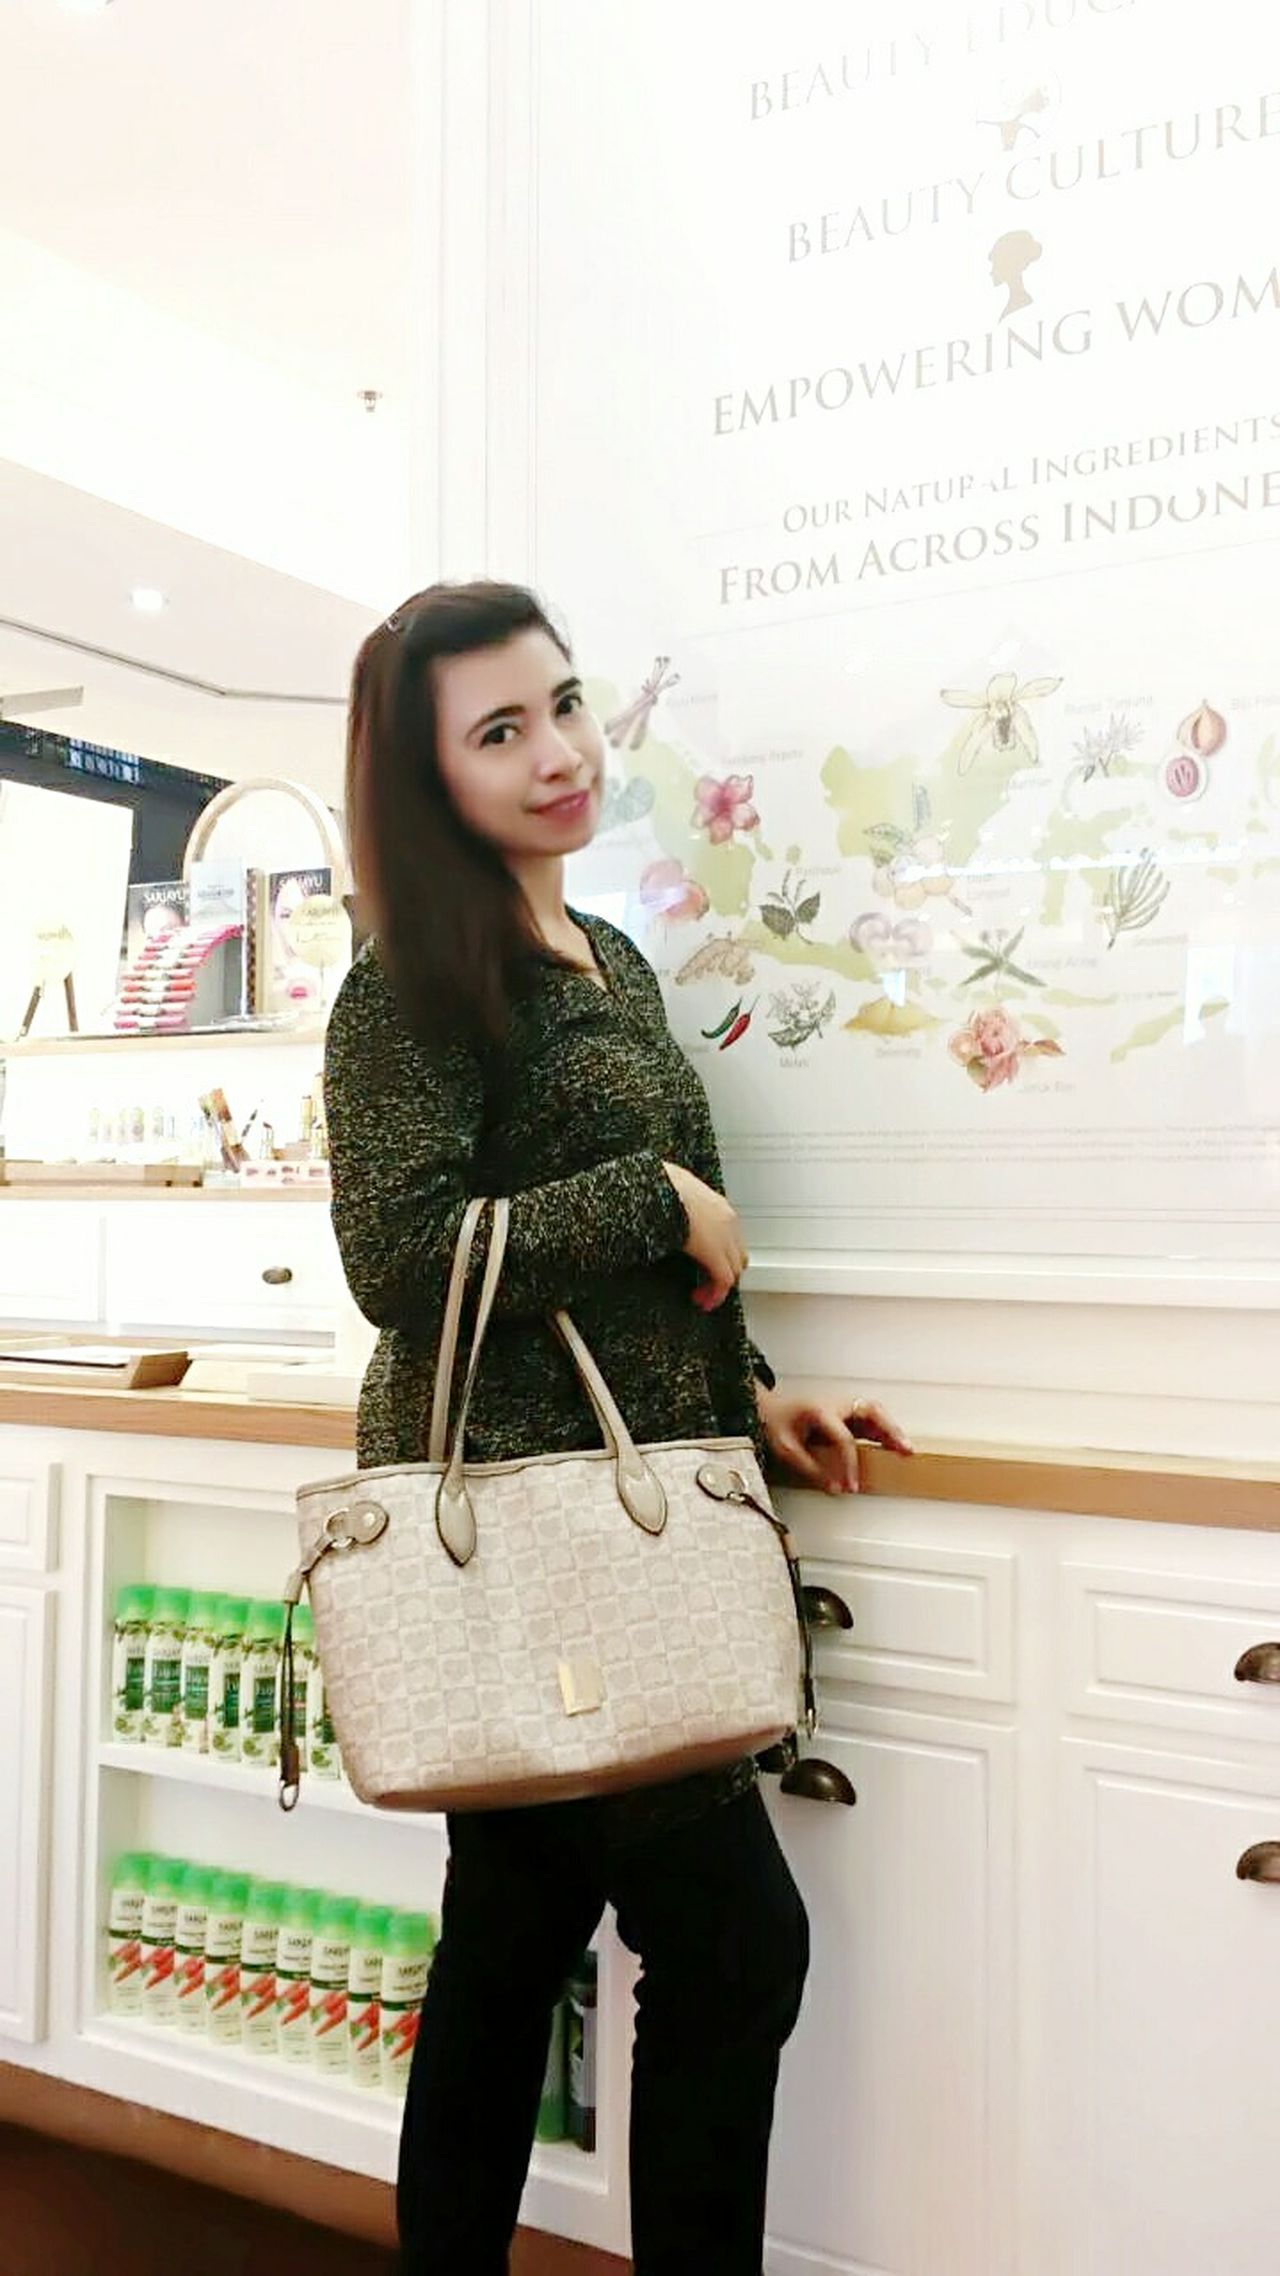 Edisi lebaran jalan2 syantikkk Hello World Hanging Out Enjoying Life Grandindonesia Pac Marthatilaar Martha Tilaar Salon & Spa INDONESIA